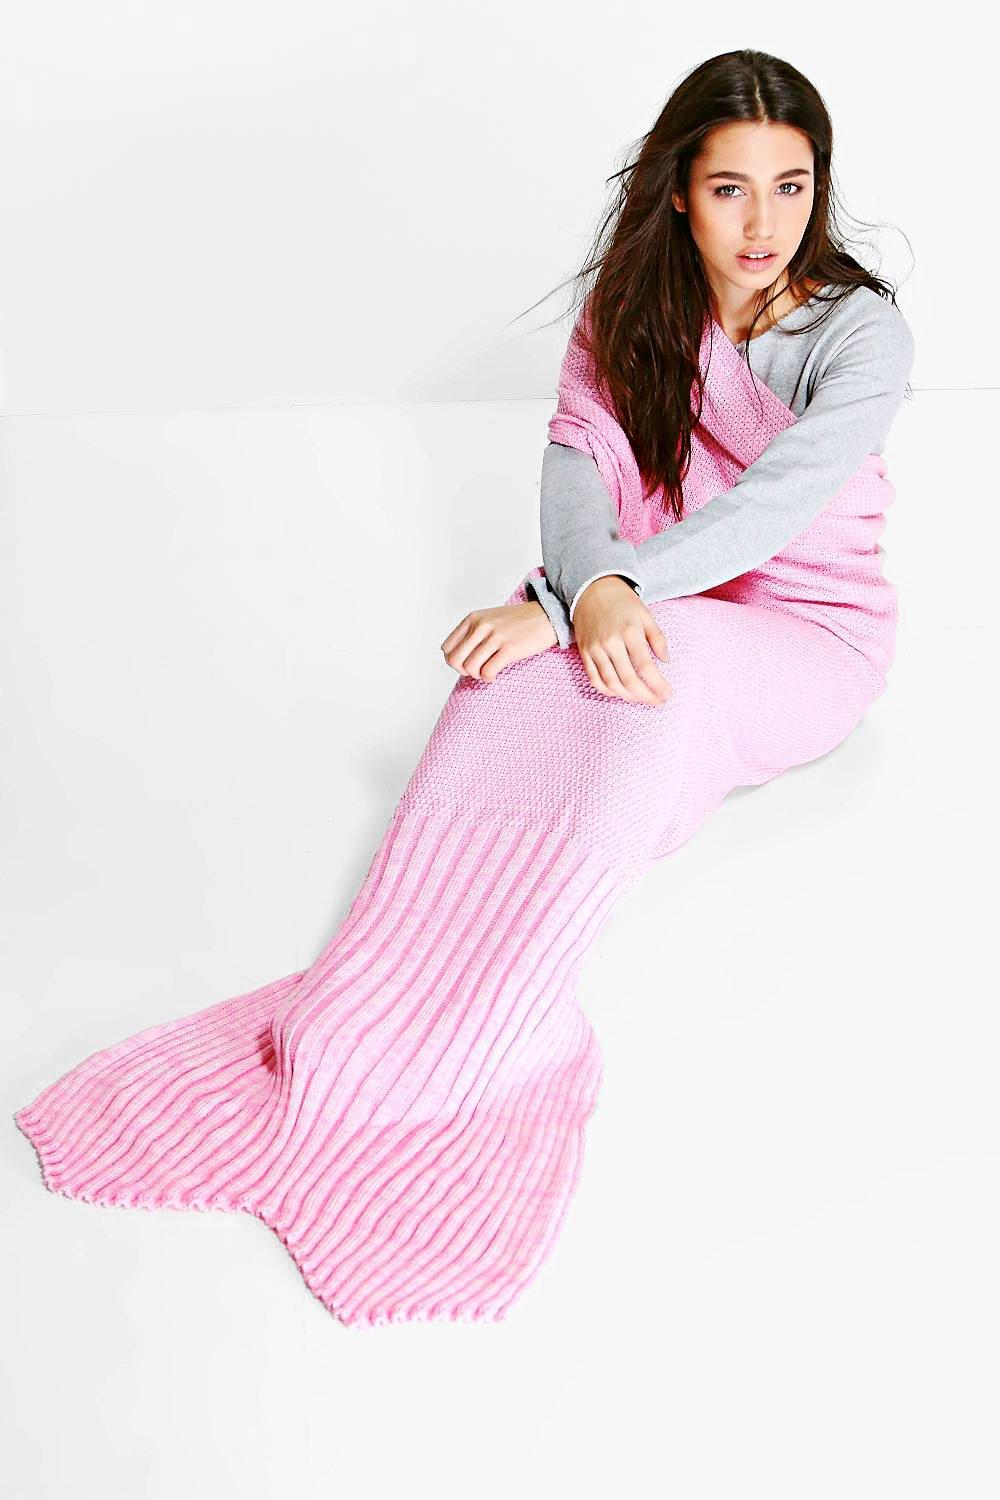 Mixed Pink Knitted Mermaid Tail Blanket